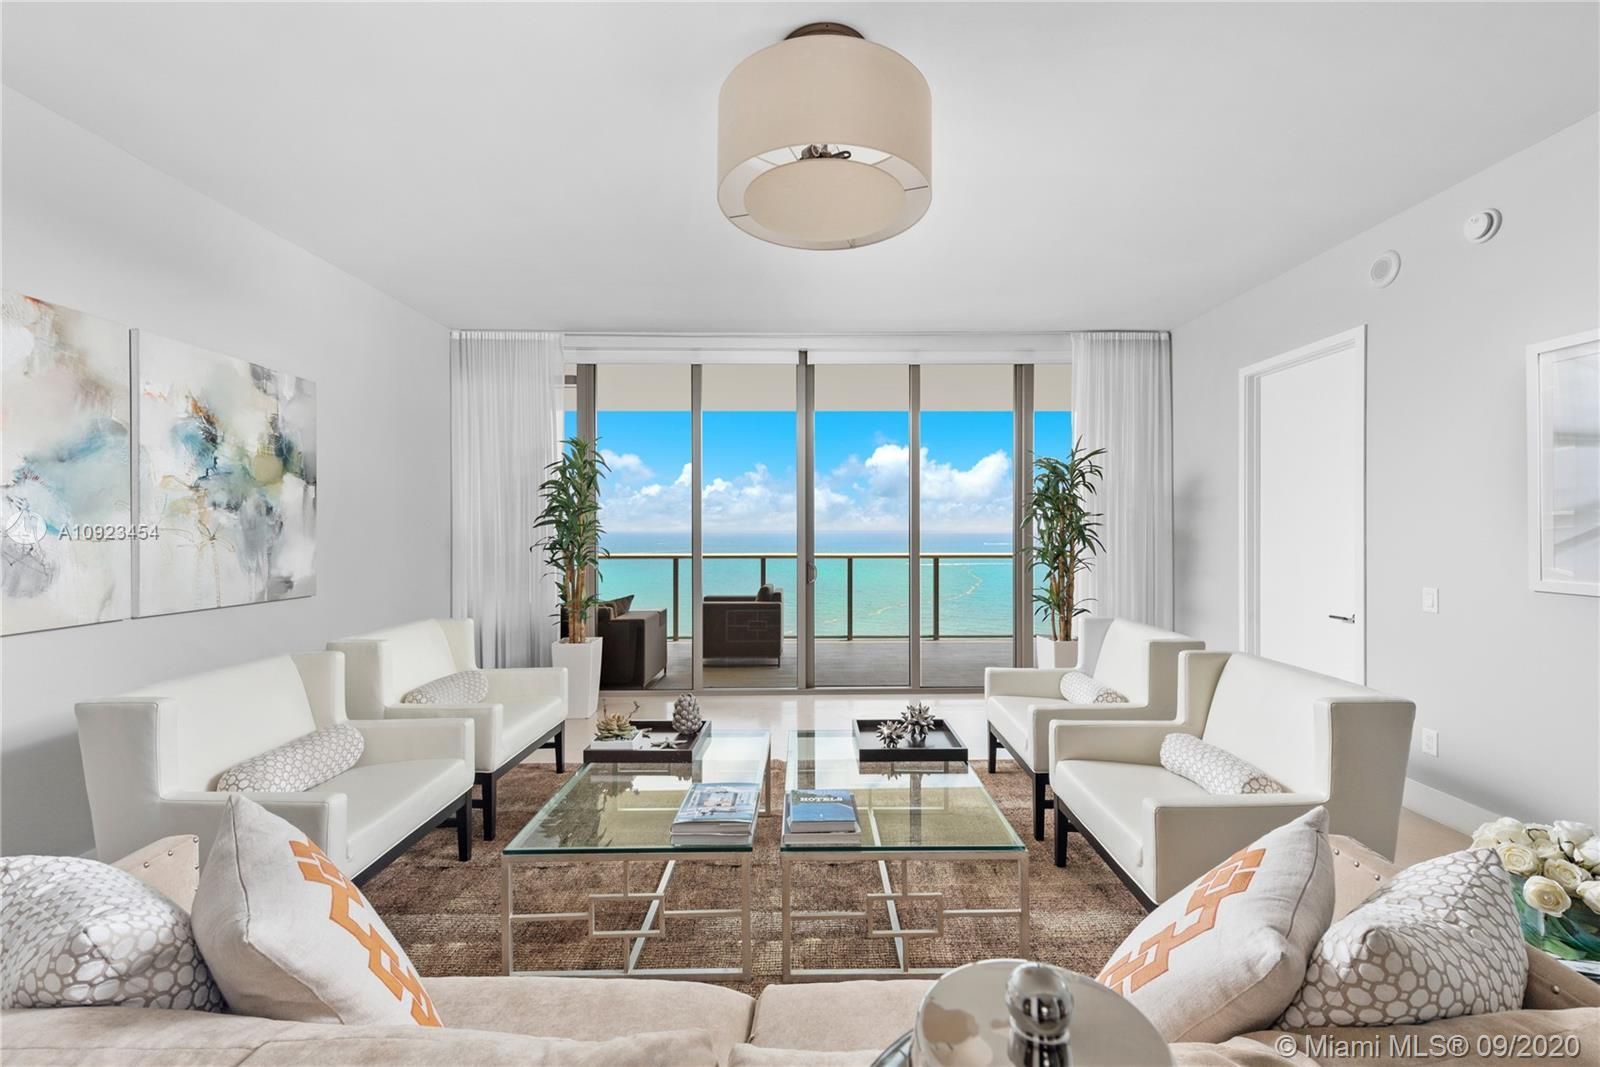 A stunning three bedroom unit at the St Regis Resort in Bal Harbour. This high floor unit has direct